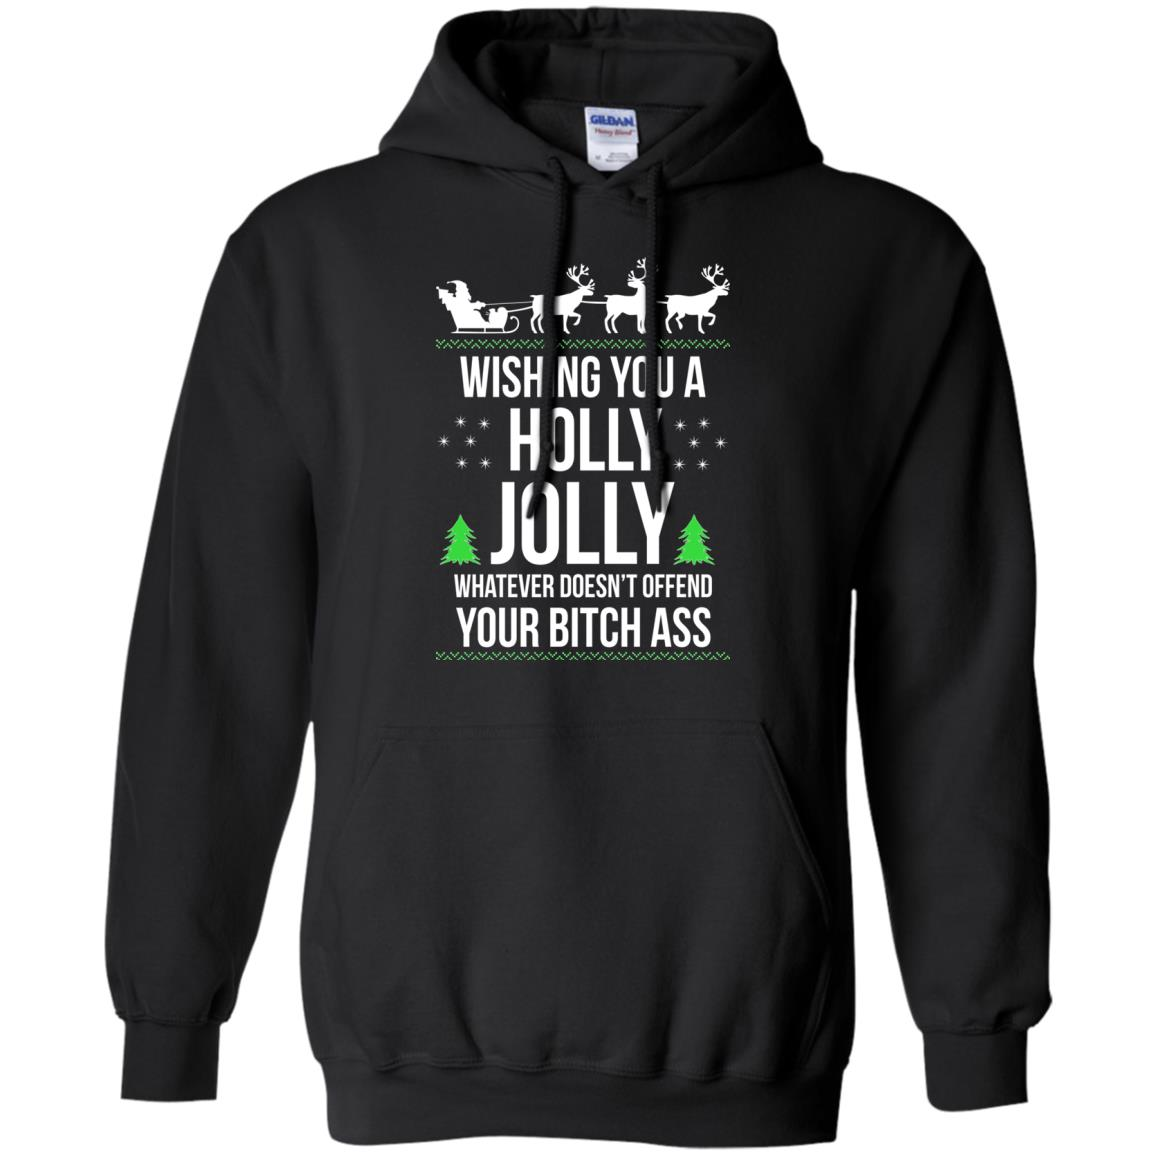 image 1185 - Wishing you a holly jolly whatever doesn't offend your bitch ass sweater, shirt